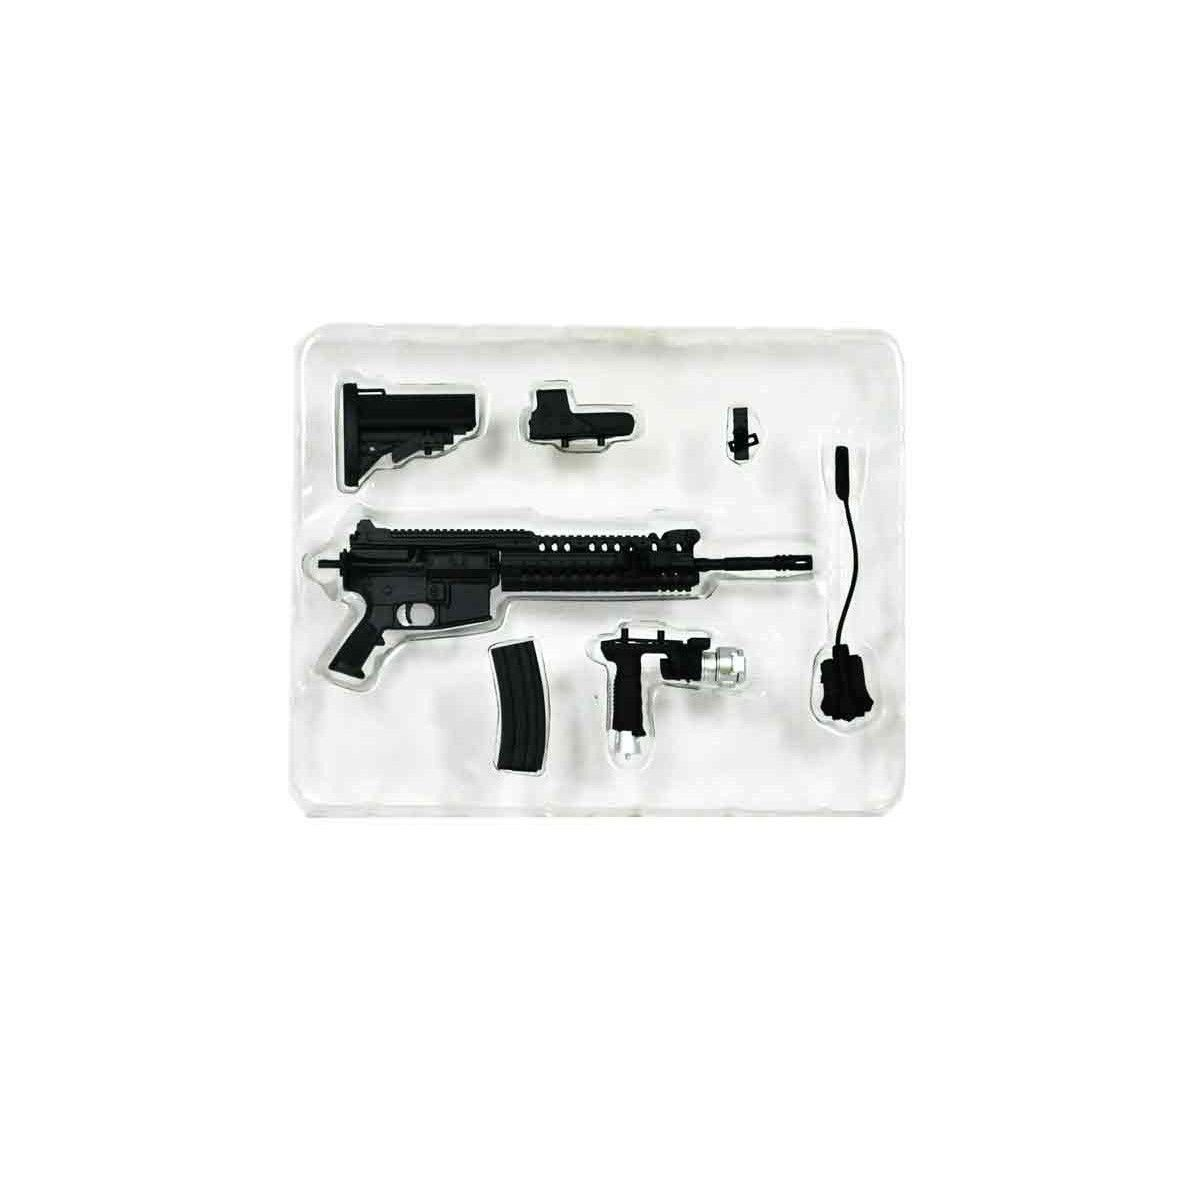 Miniatura Decorativa Rifle M4 SIR Arsenal Guns